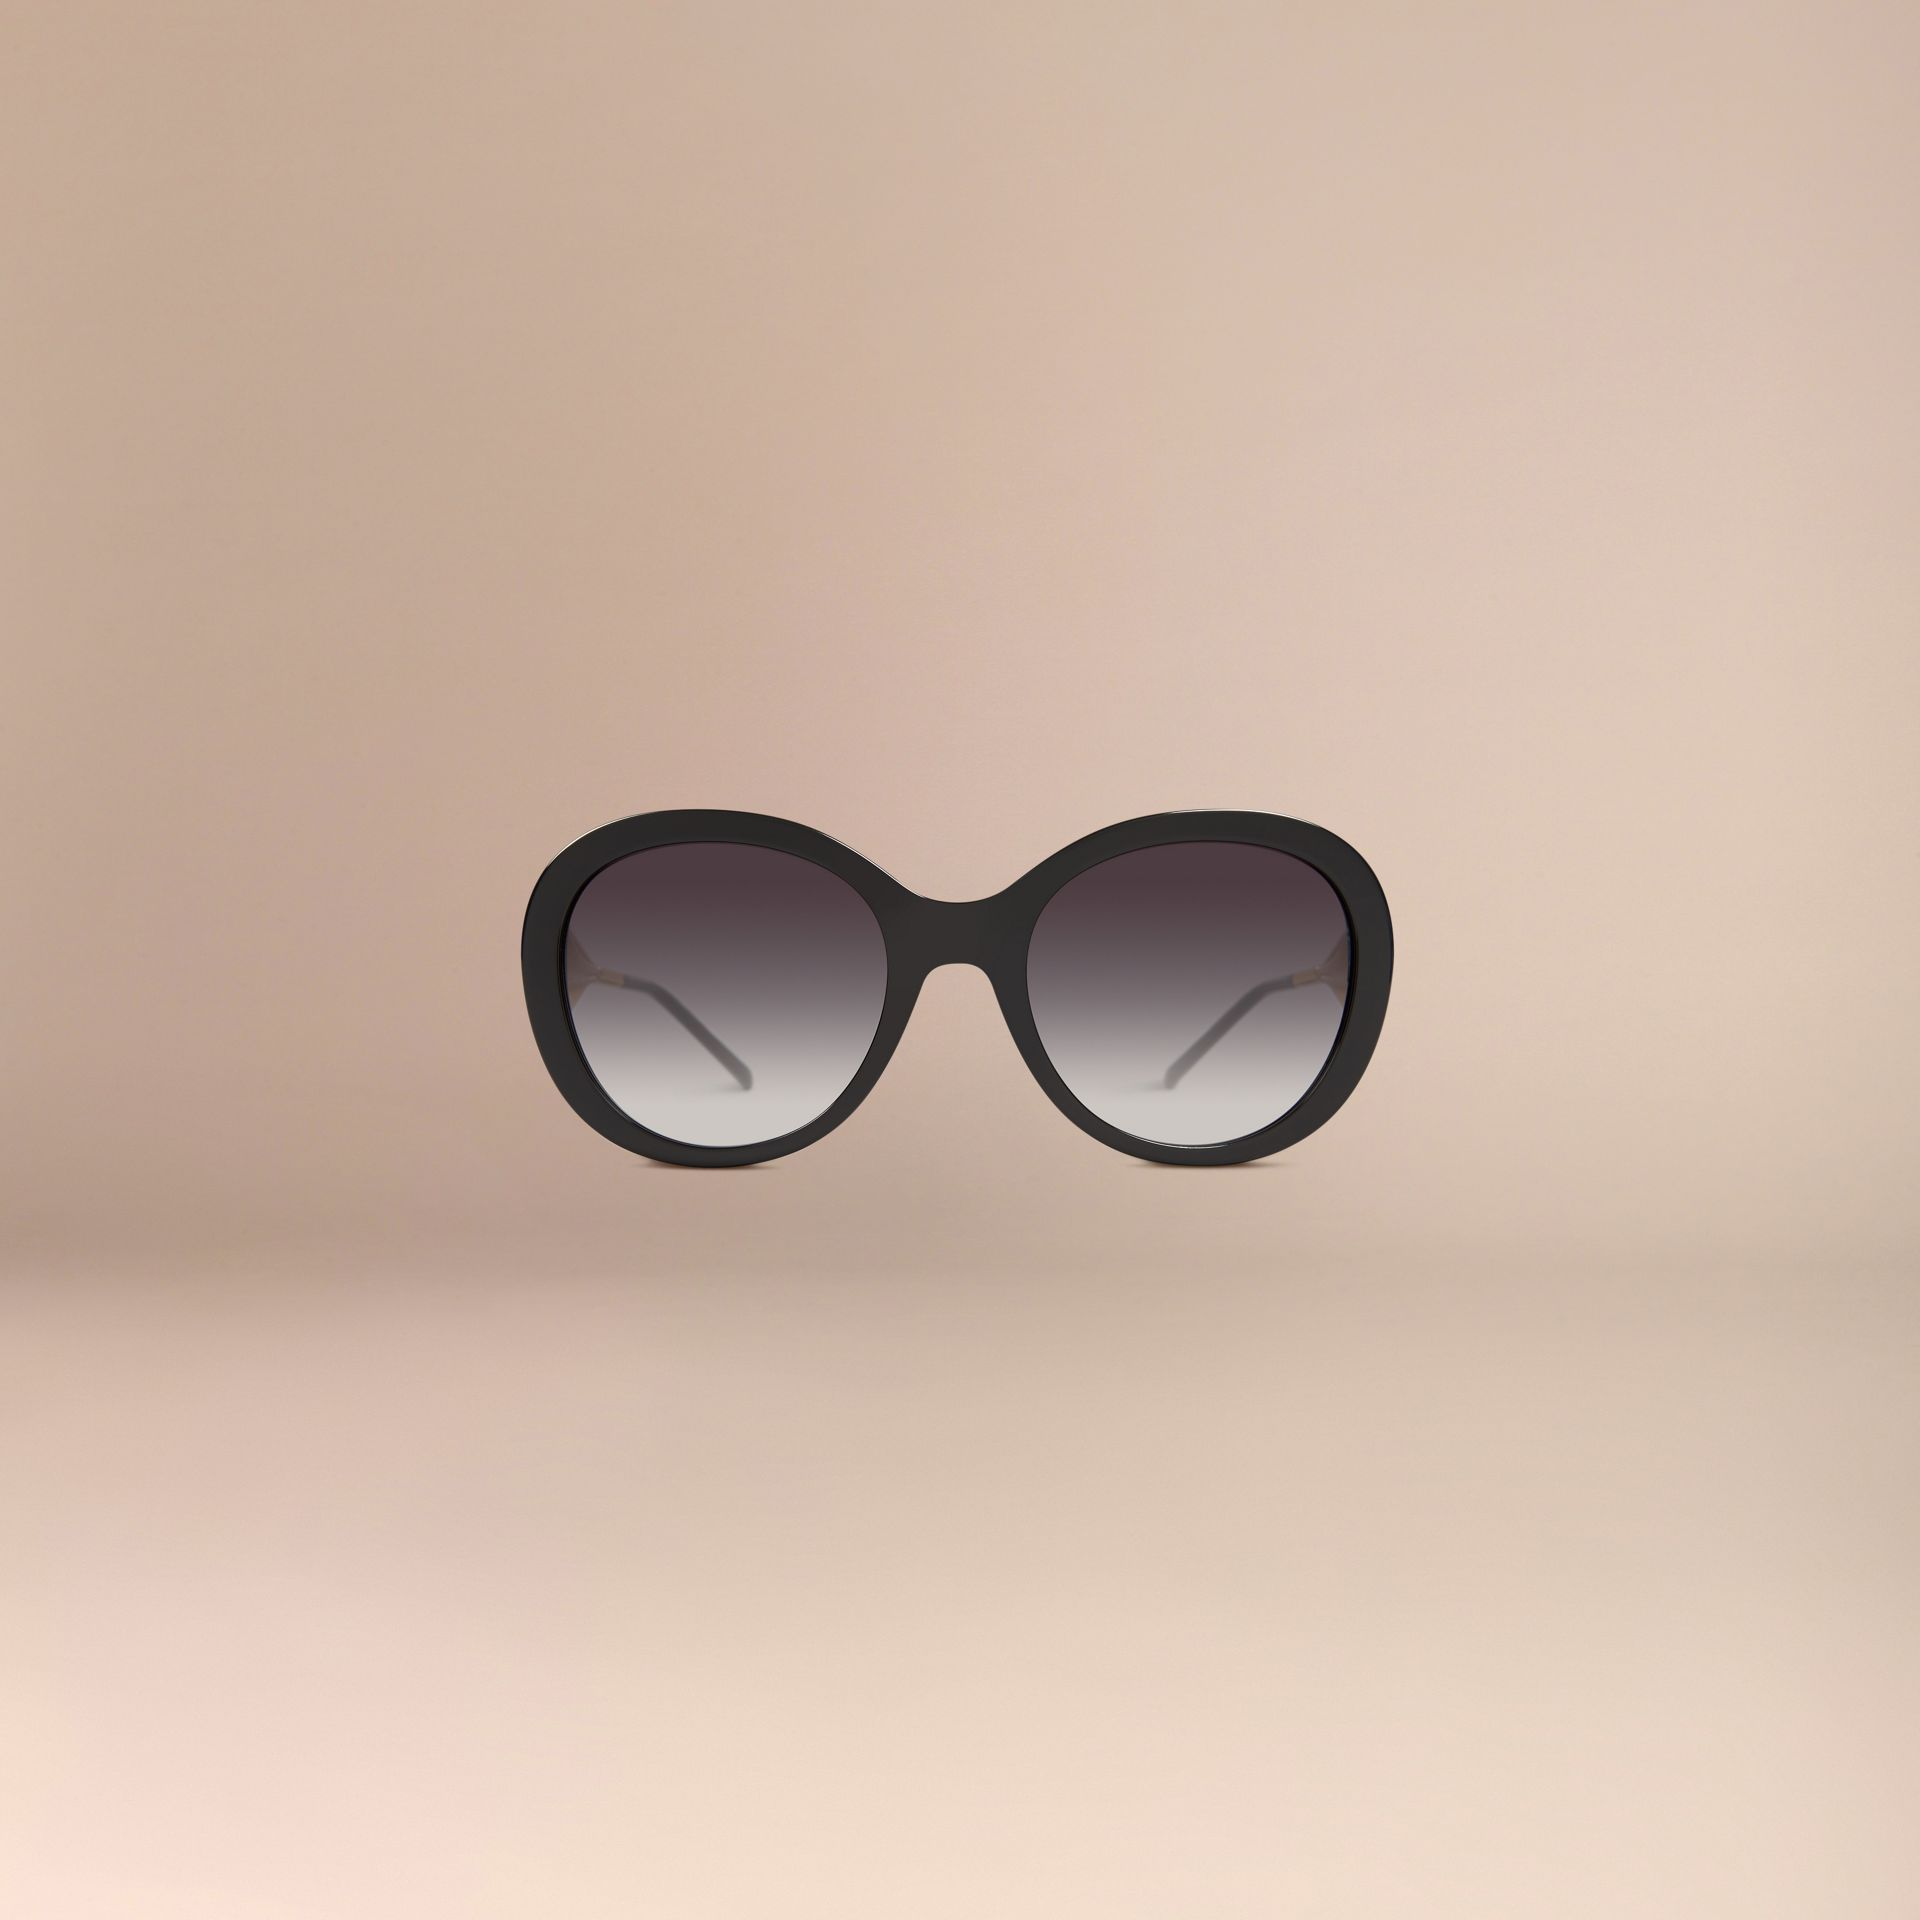 Oversize Round Frame Sunglasses in Black - Women | Burberry - gallery image 2